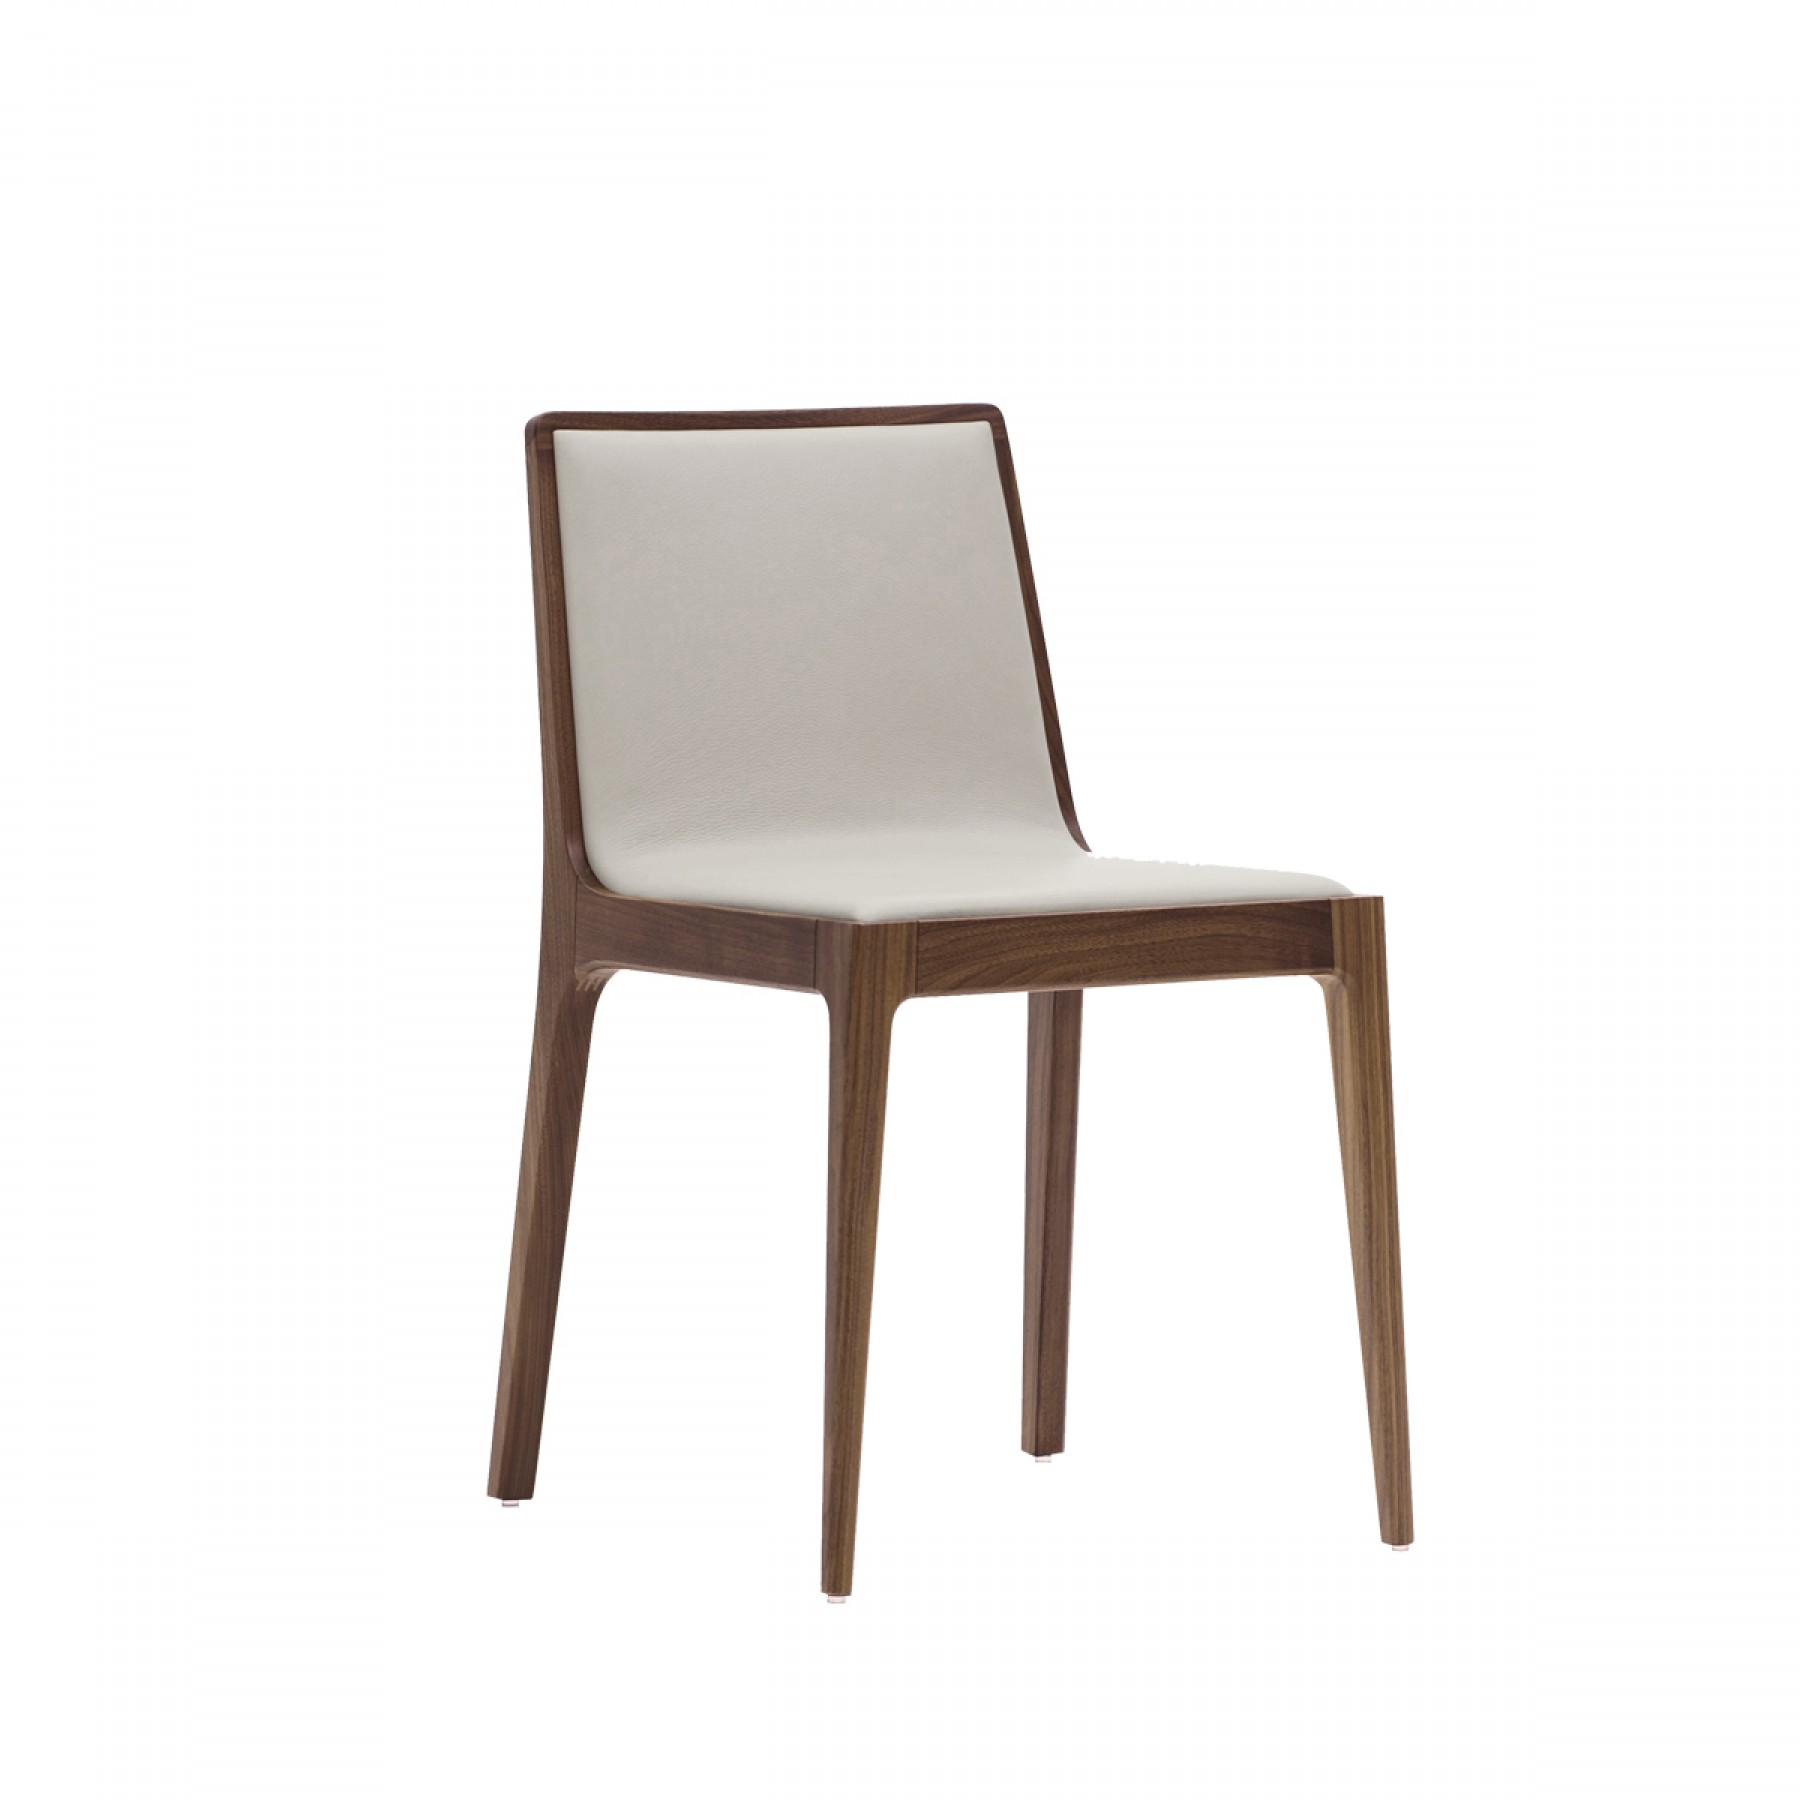 Modern times vintage danish and european design modern leather dining chairs australia modern Modern home furniture australia